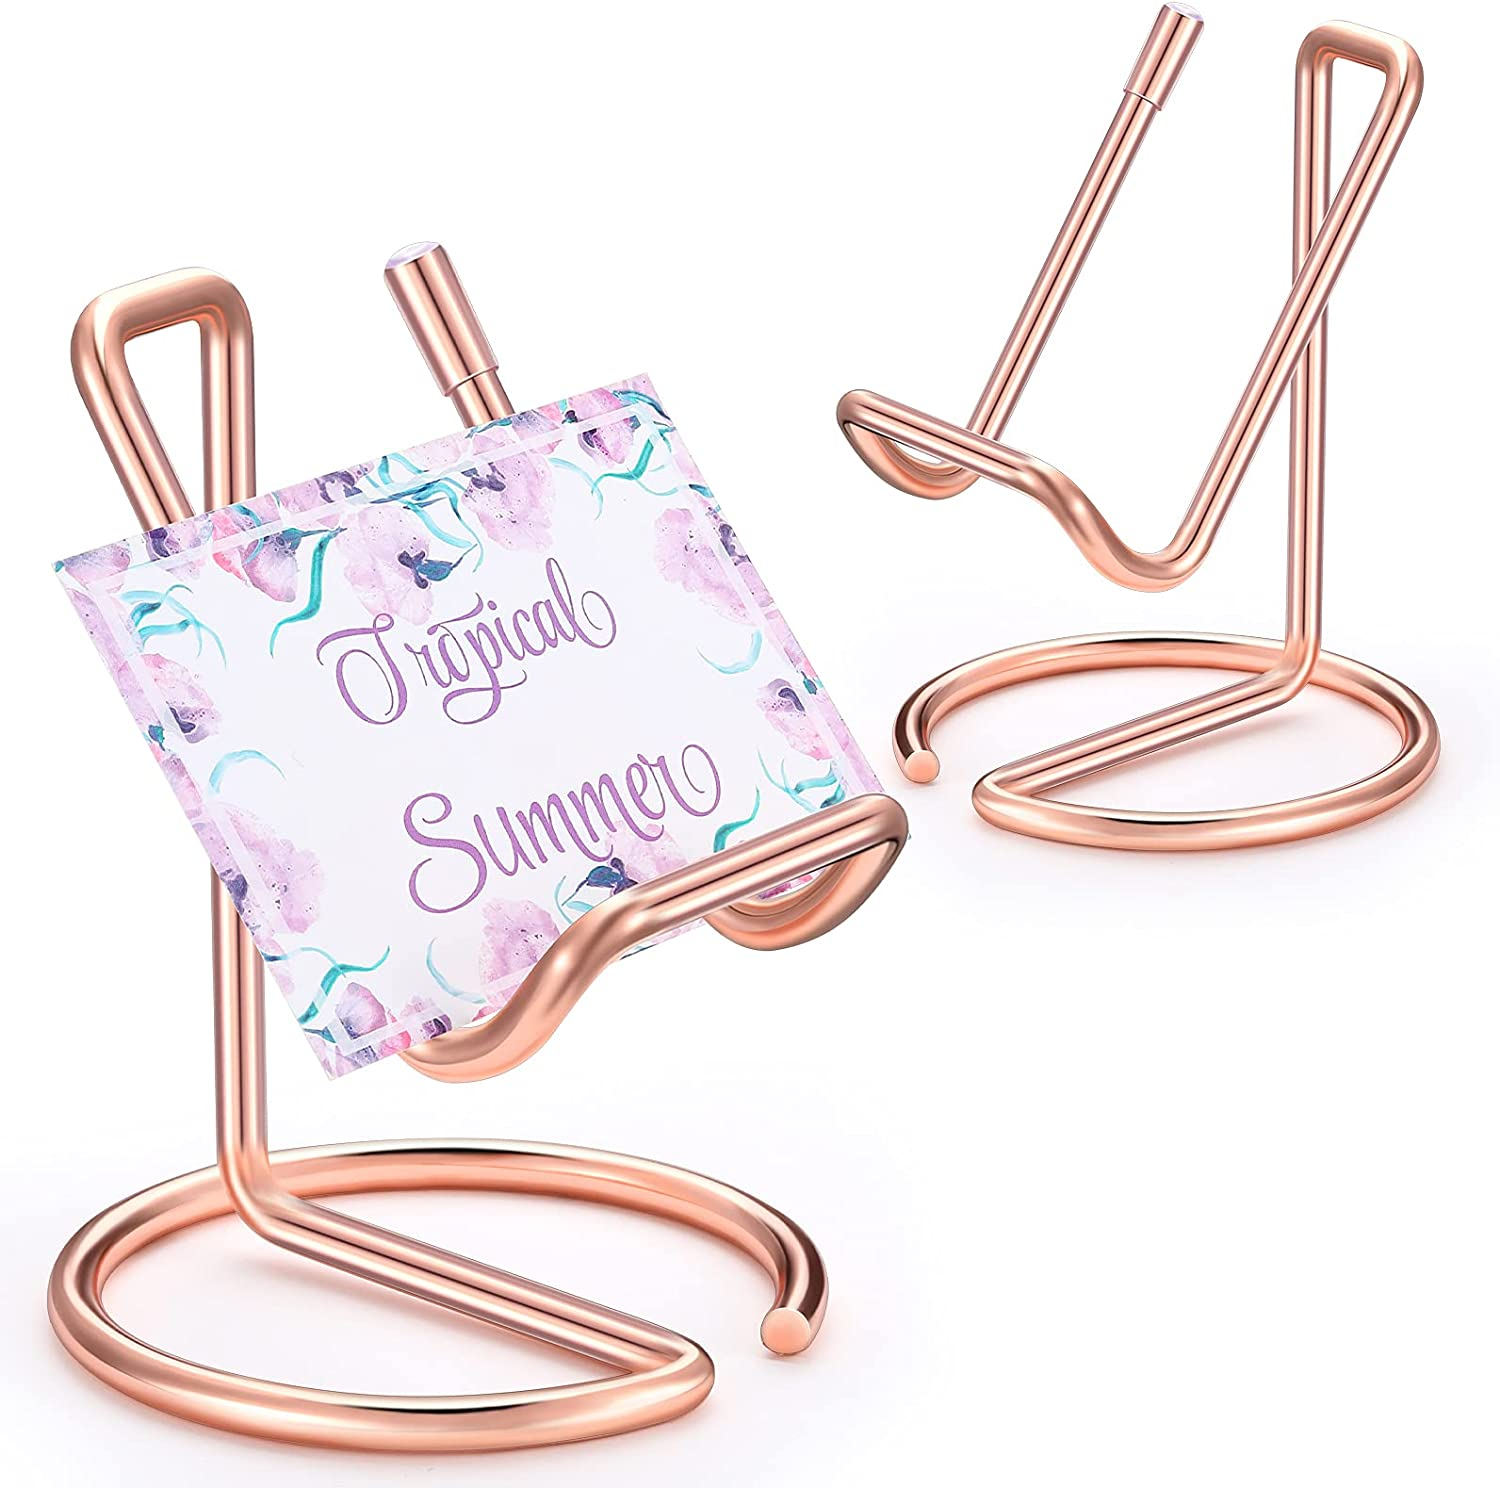 2 Pieces Metal Business Card Holder for Desk, Cell Phone Stand, Elegant Line Business Card Display Holder Stand, Office Desktop Business Name Card Organizer (Rose Gold)